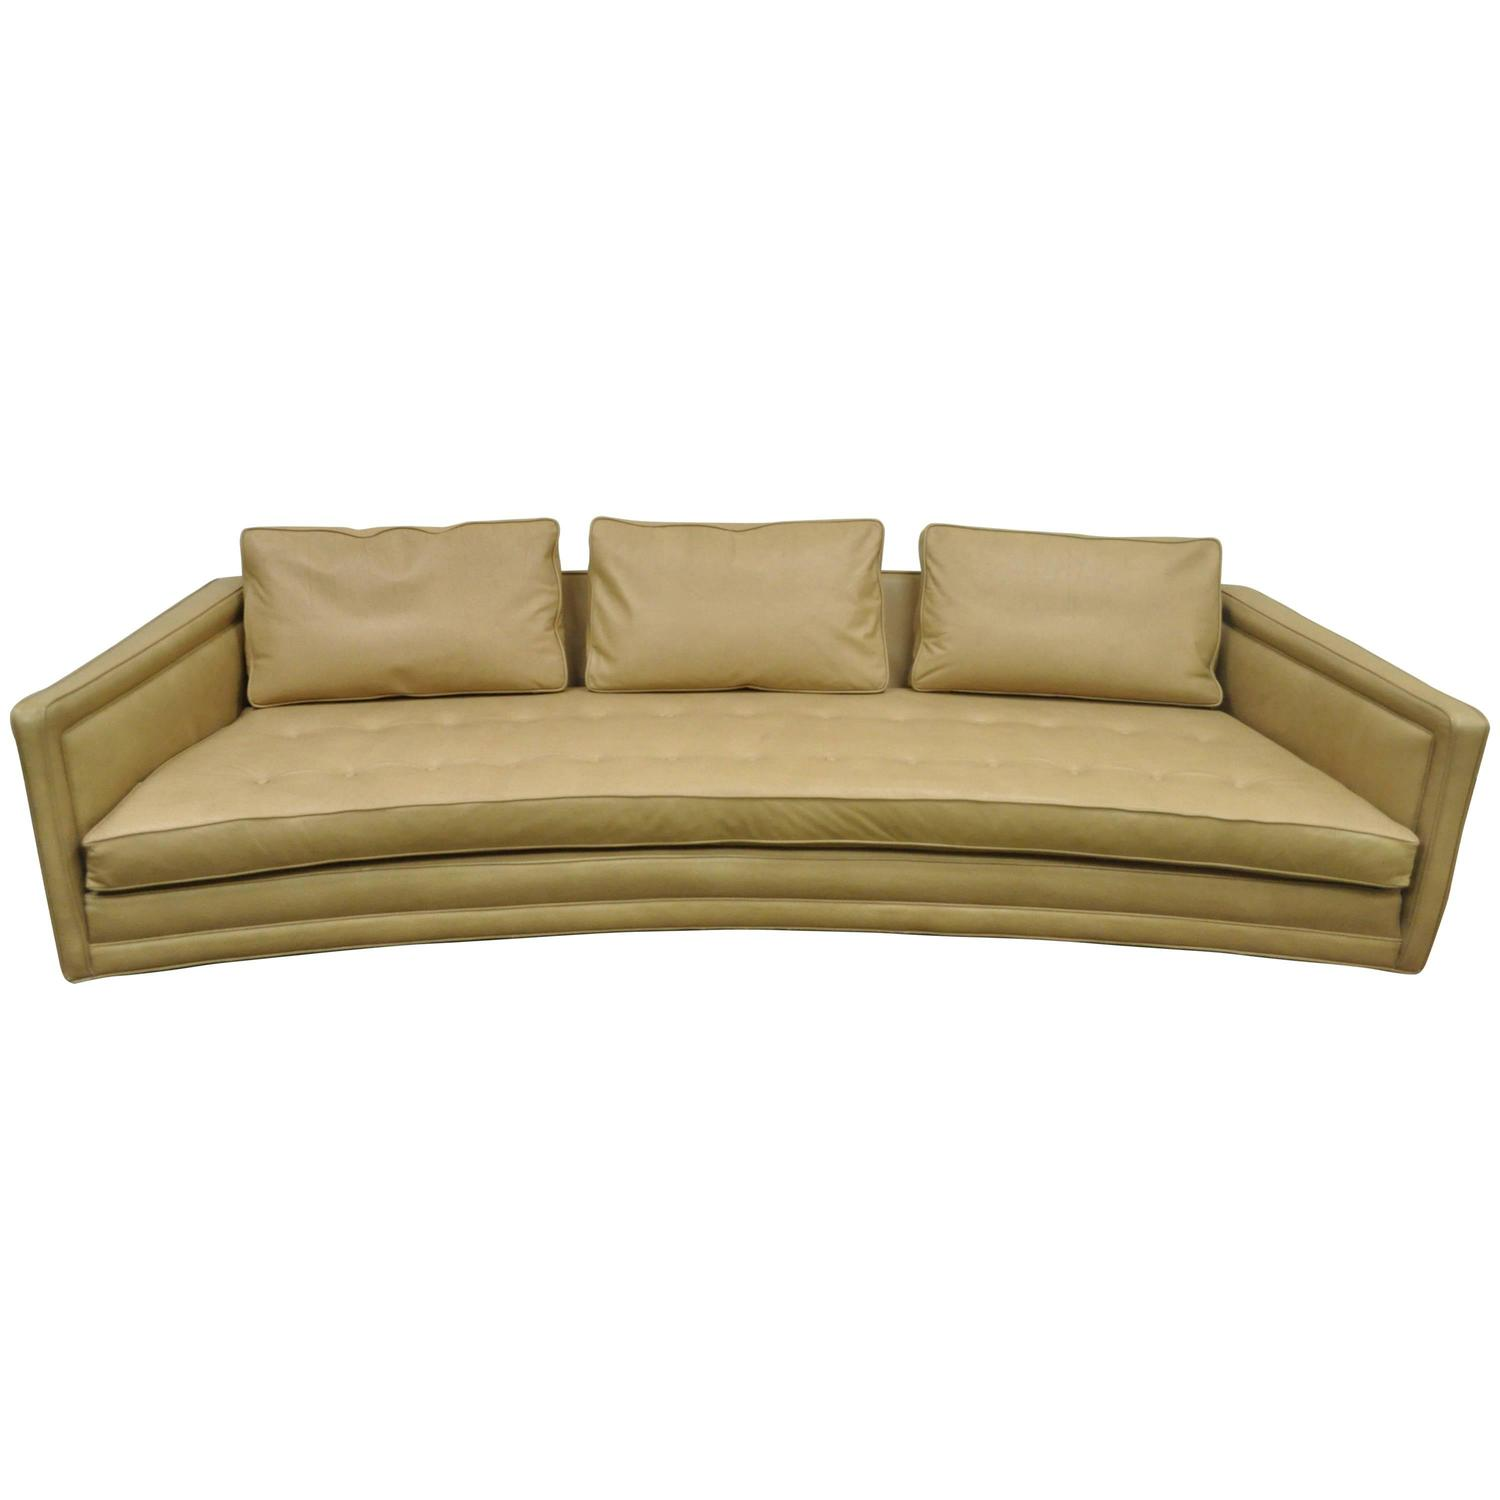 Mid Century Modern Sofas: Long Curved Harvey Probber Button Tufted Leather Mid